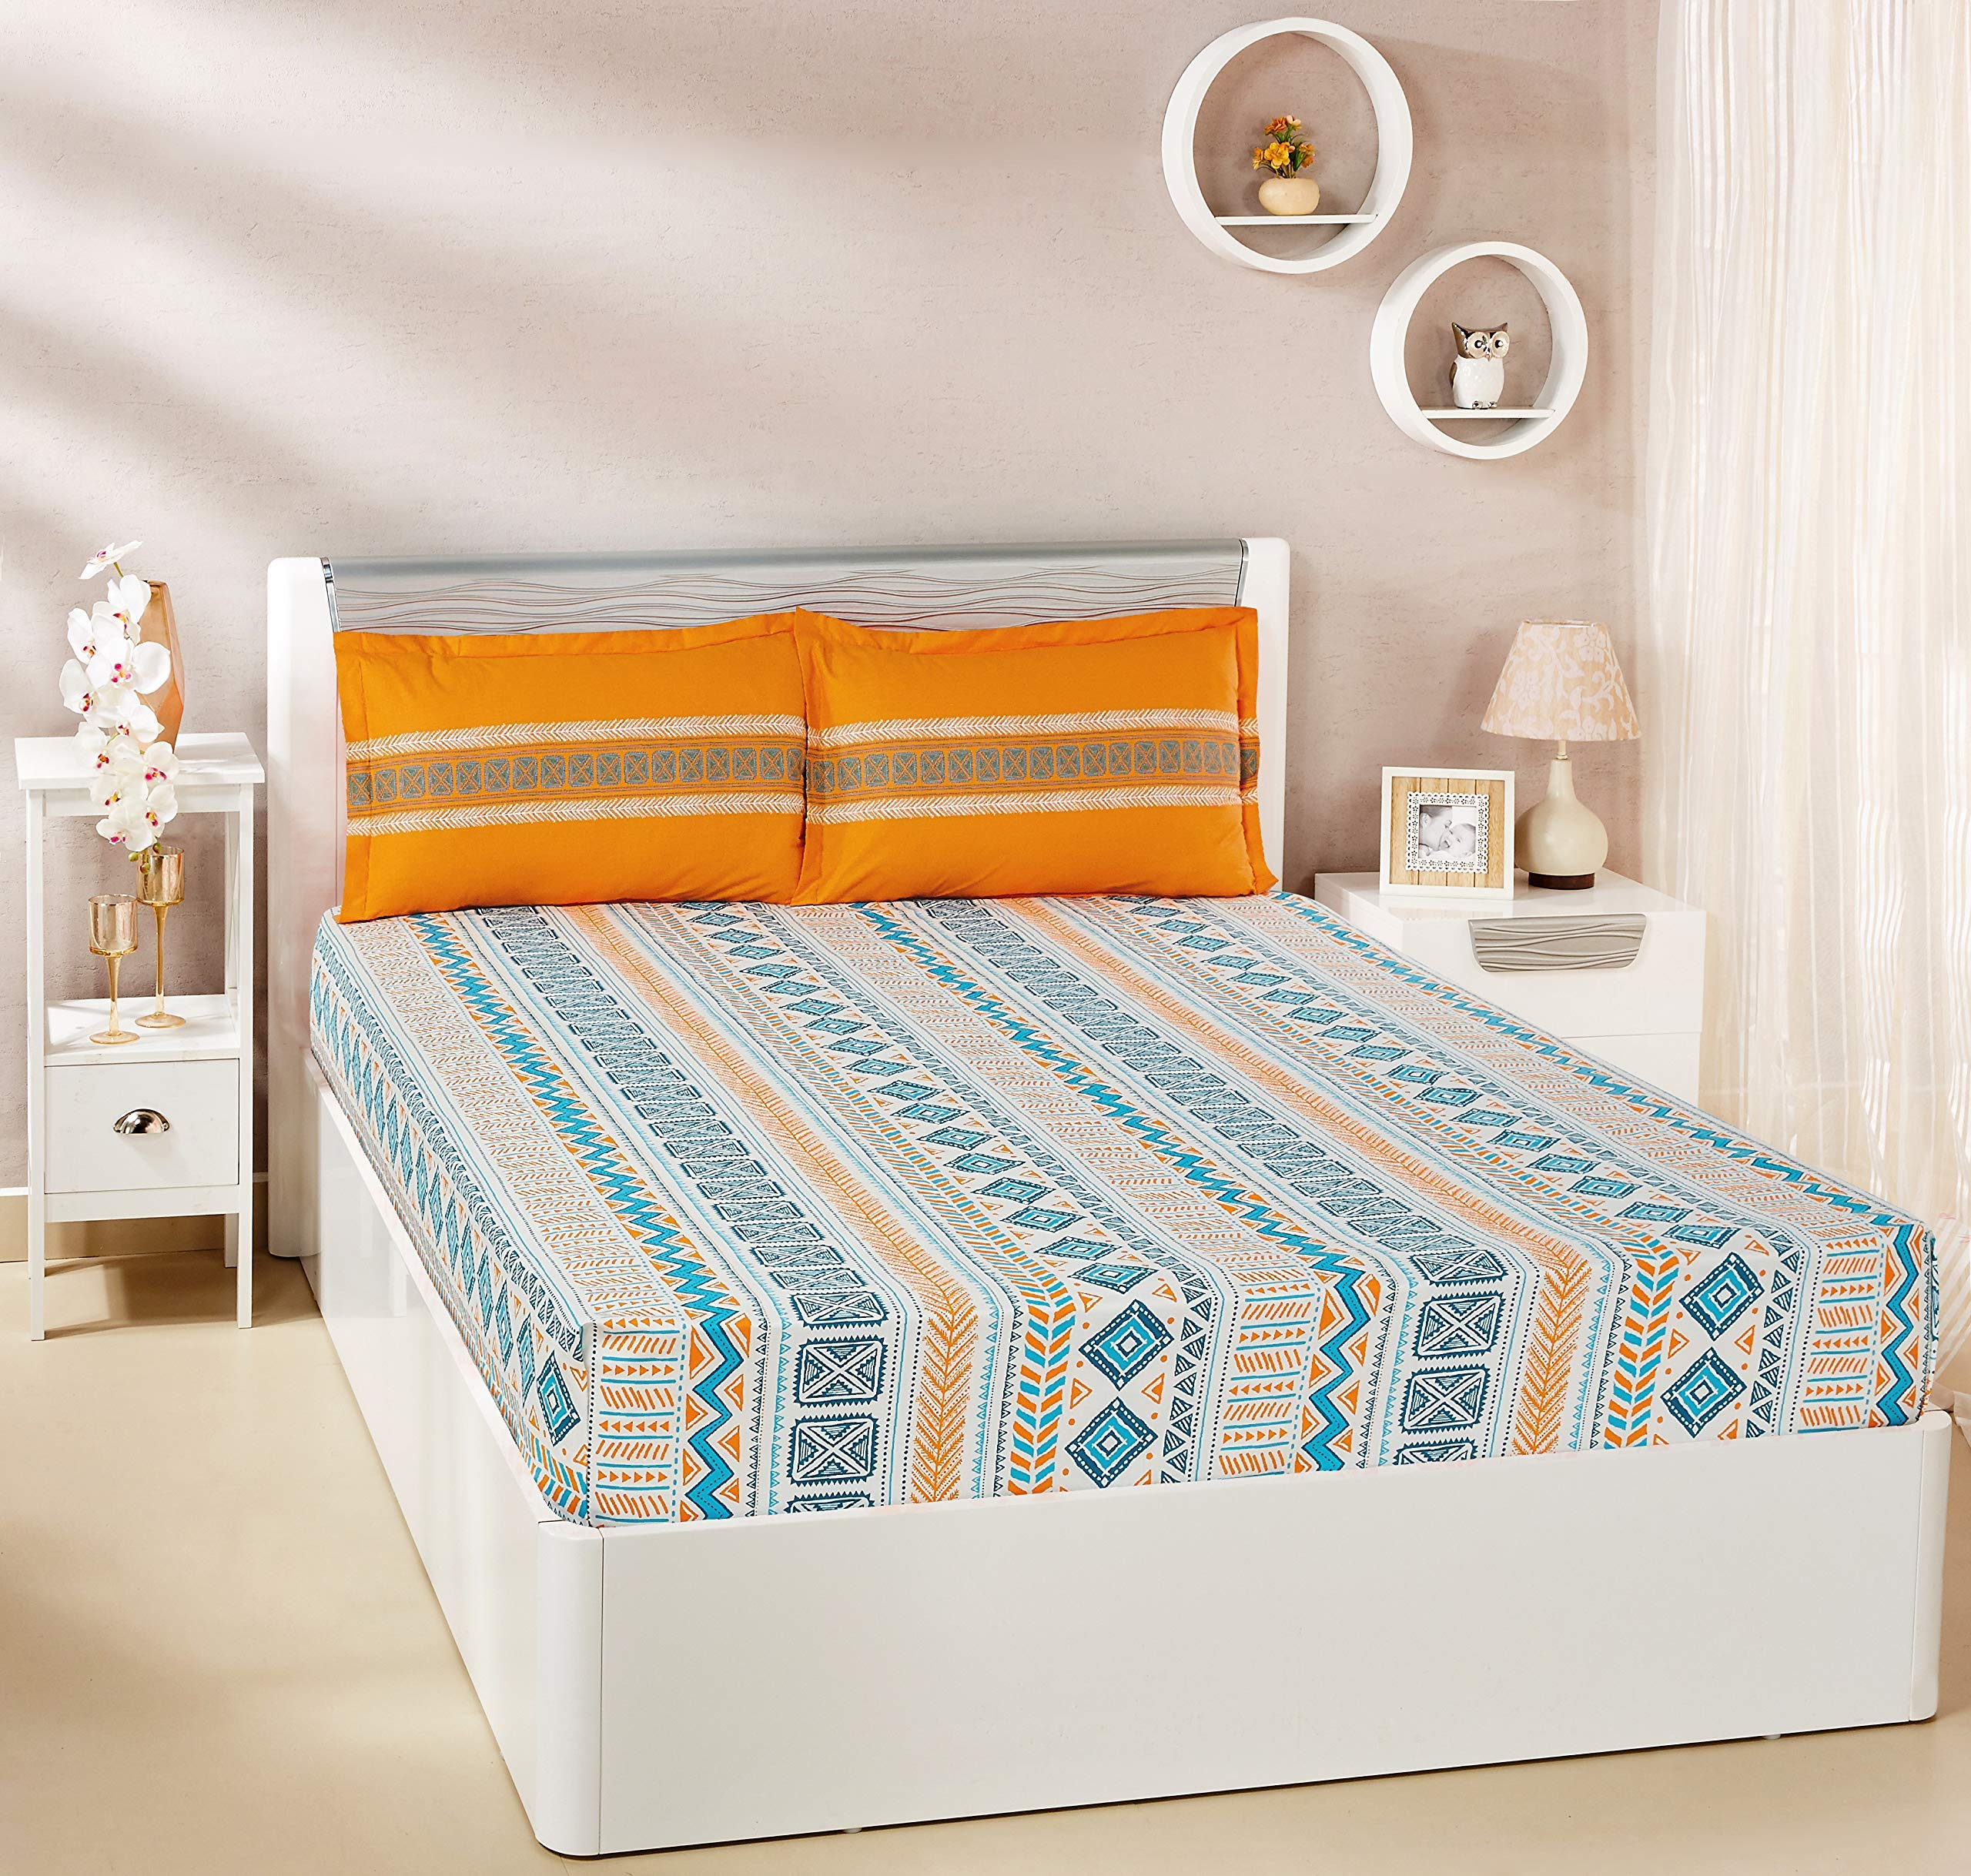 Amazon Brand - Solimo Fuzzy Strings 144 TC 100% Cotton Double Bedsheet with 2 Pillow Covers, Orange product image